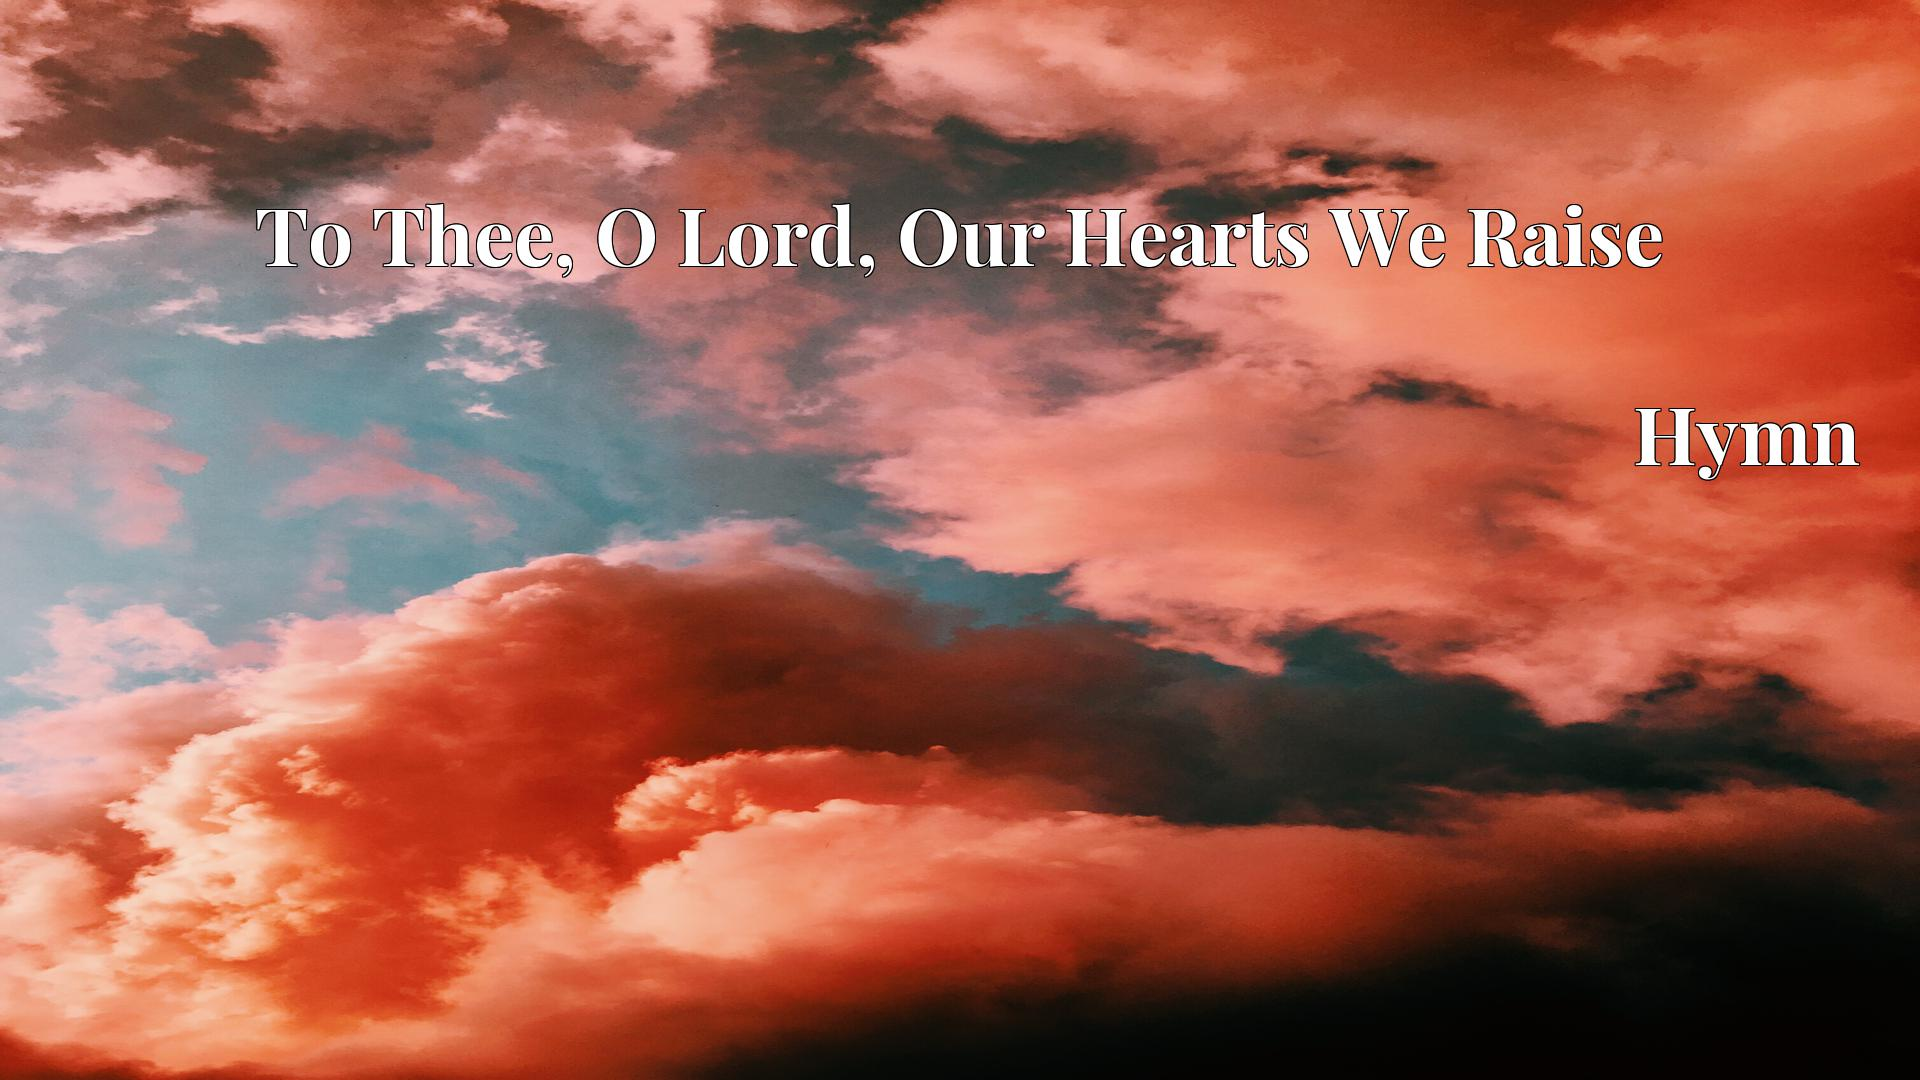 To Thee, O Lord, Our Hearts We Raise - Hymn